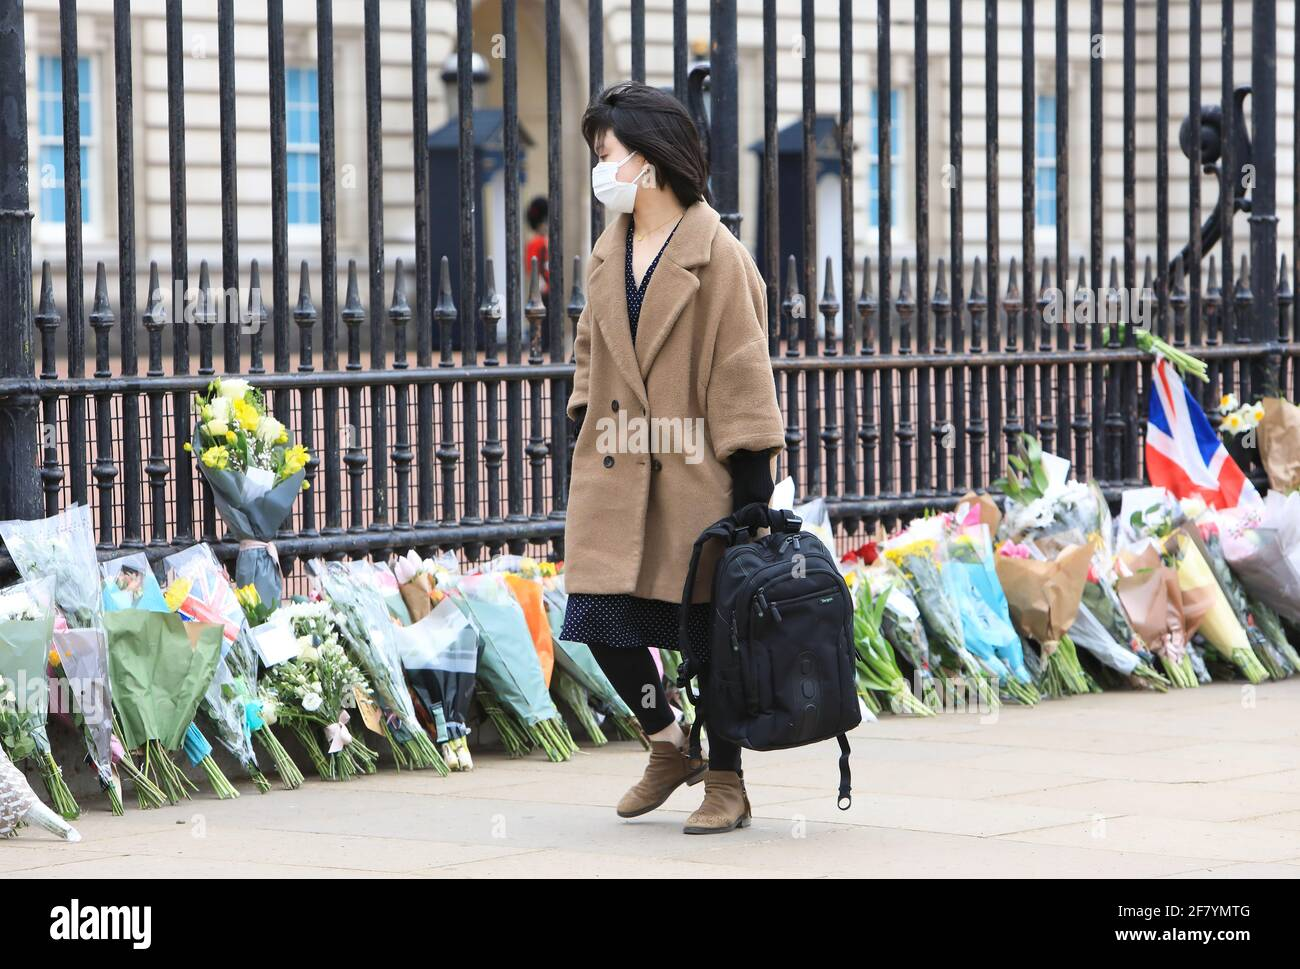 London, UK April 10th 2021. People queued up to lay flowers and pay their respects outside Buckingham Palace in tribute to HRH Prince Philip, who died on Friday at the age of 99, just 2 months short of his 100th birthday. Monica Wells/Alamy Live News Stock Photo